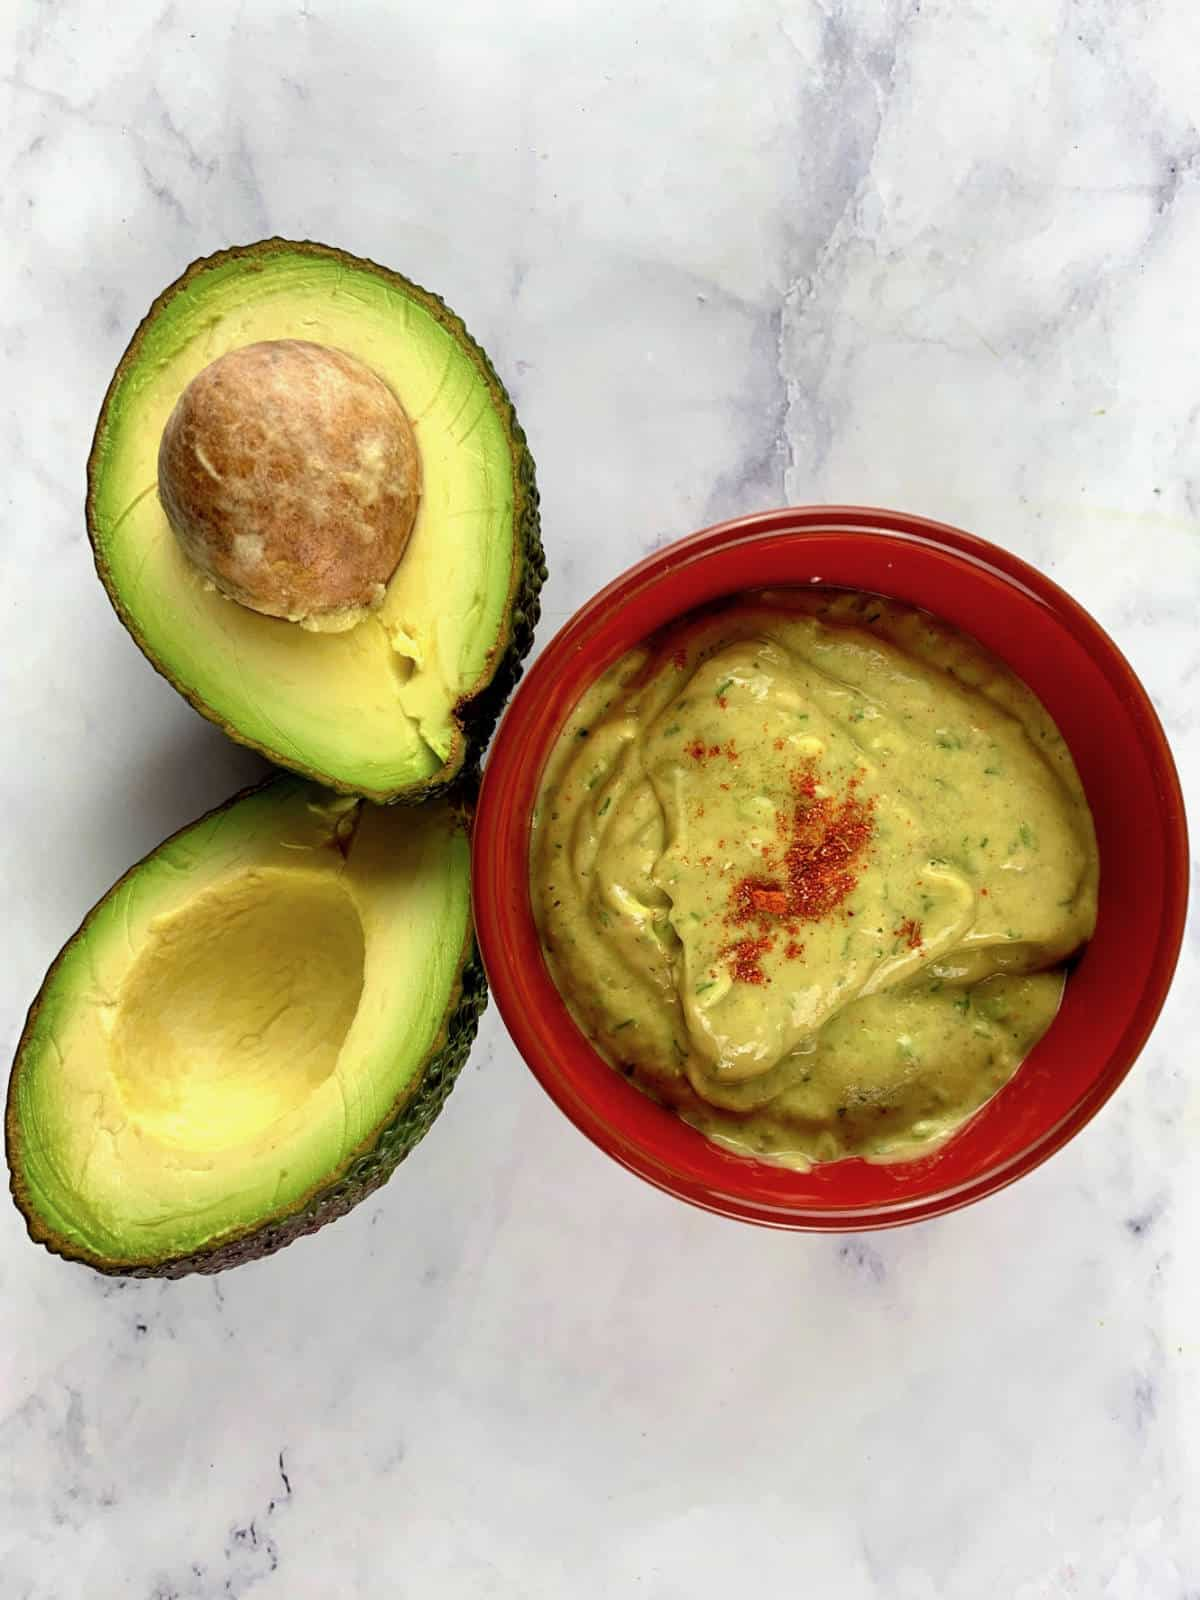 AVOCADO RANCH DRESSING IN RED BOWL WITH AVOCADOS ON THE SIDE